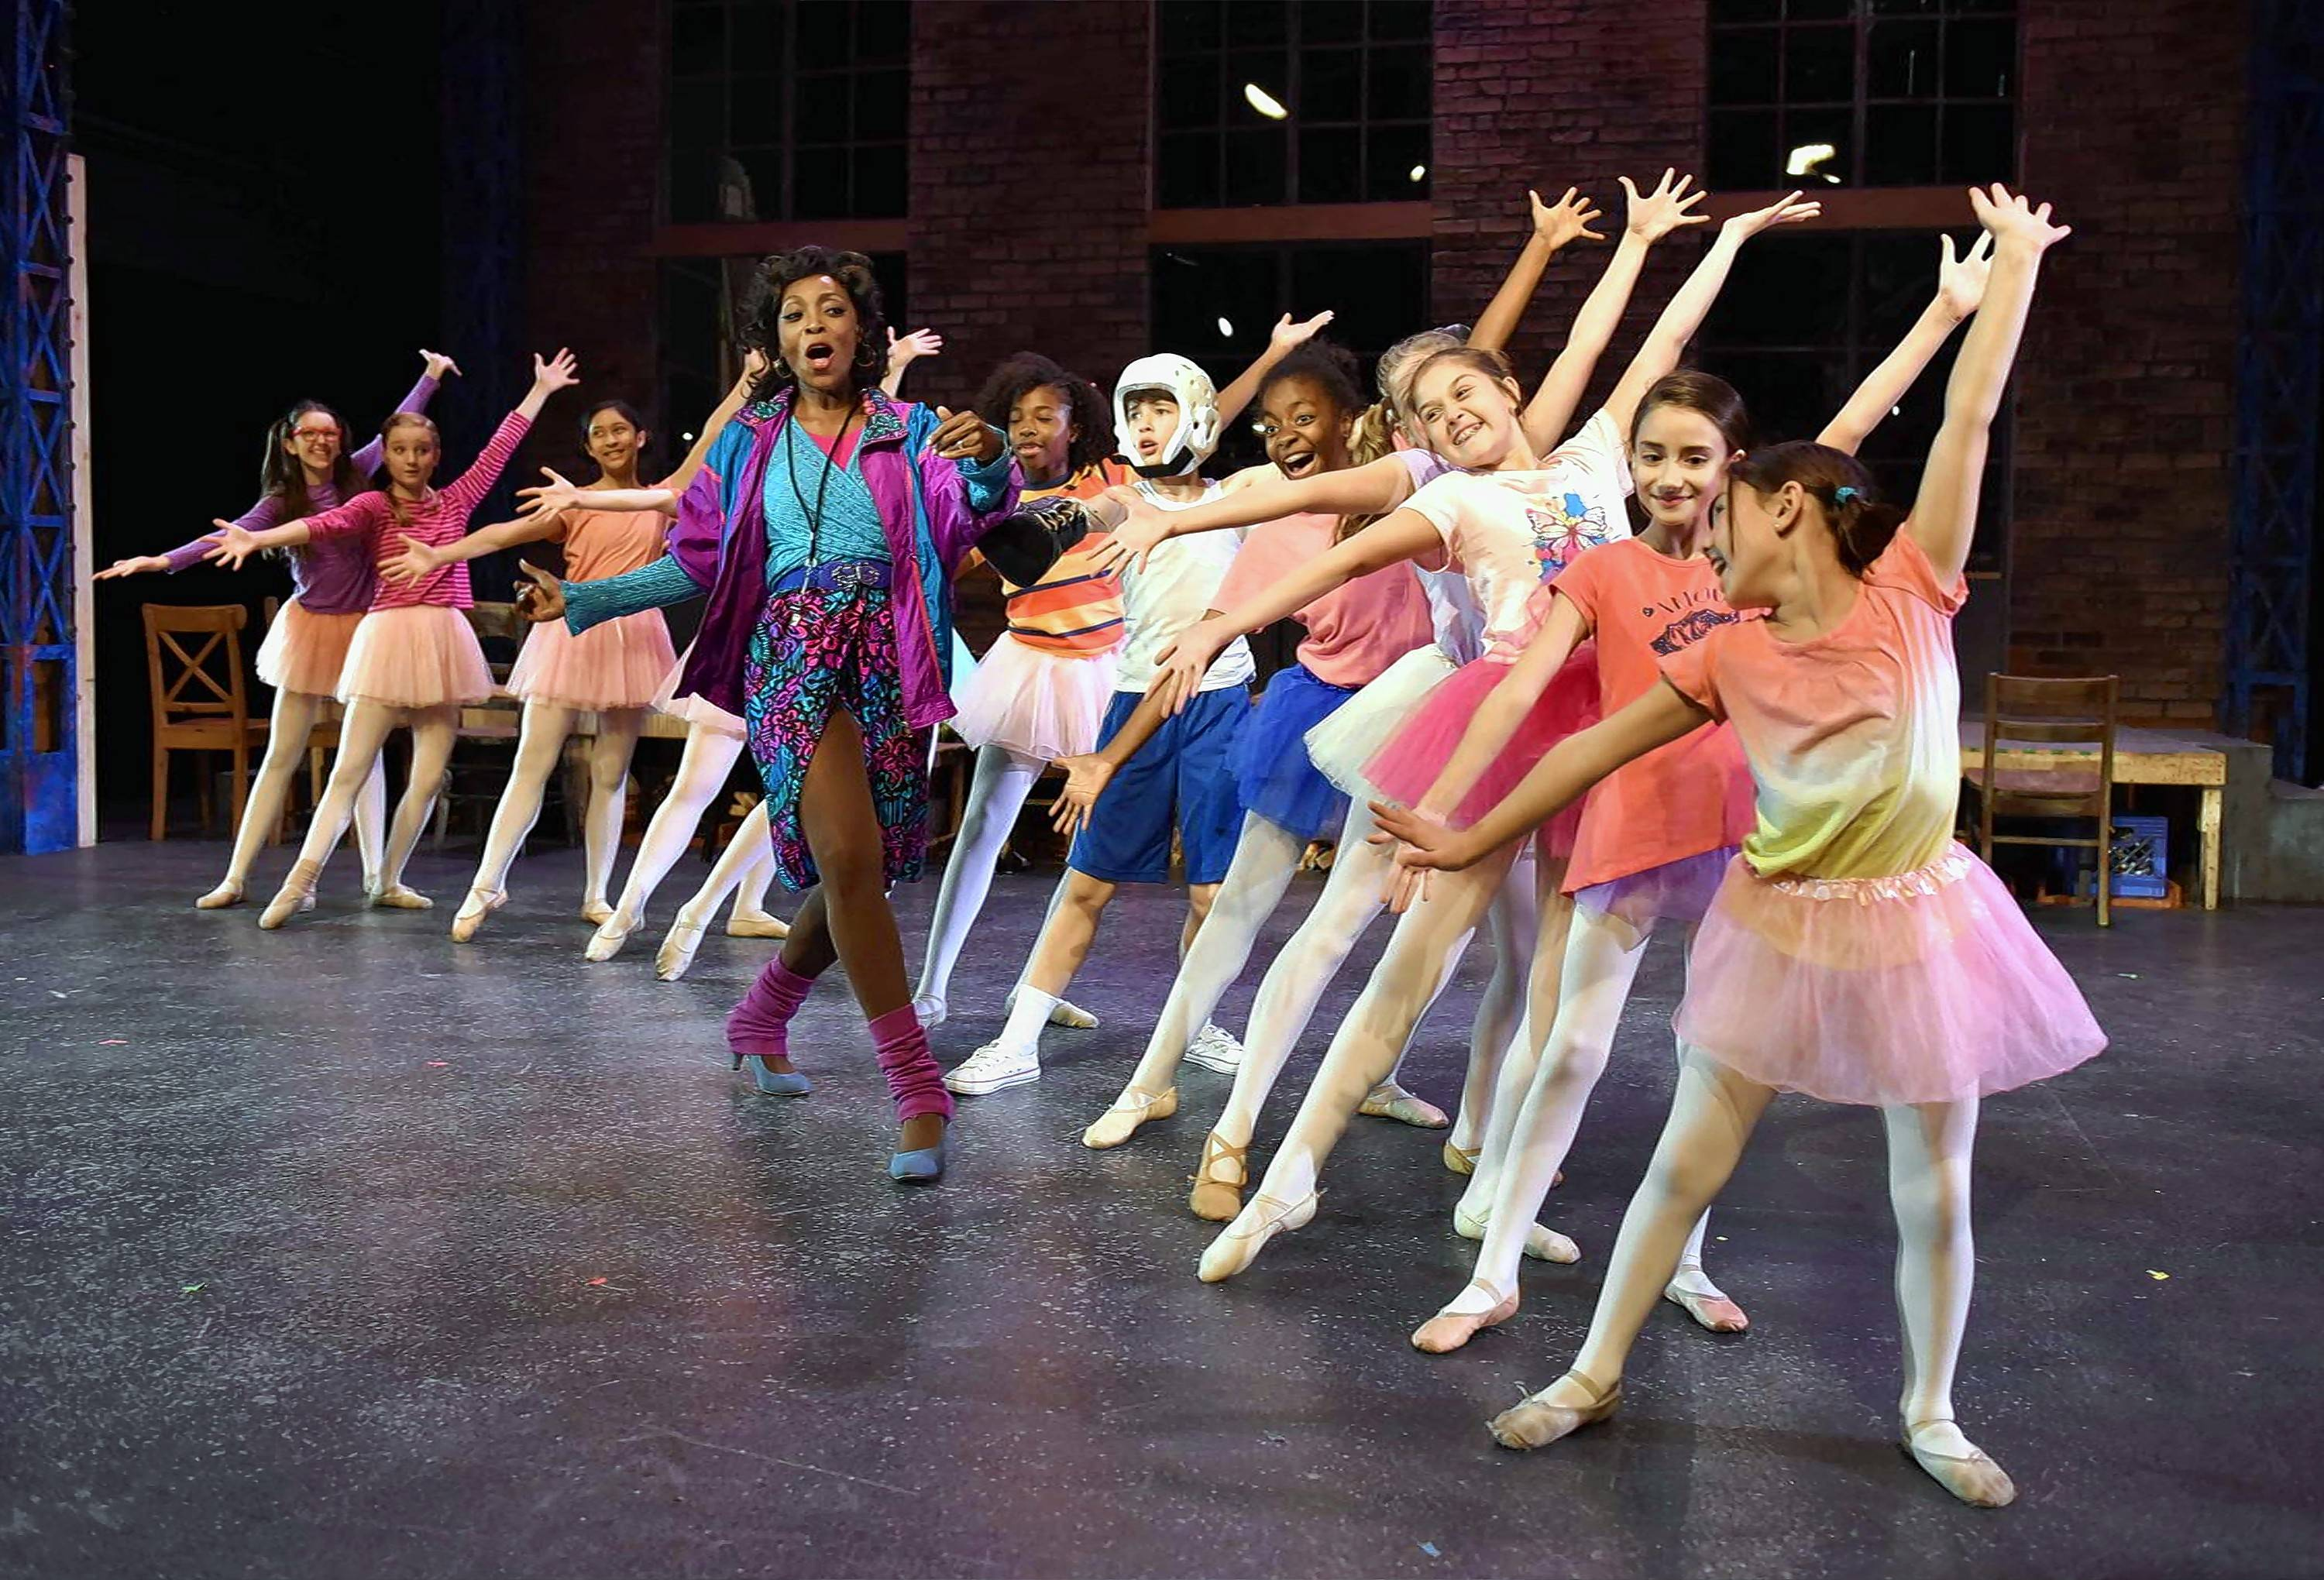 """Billy Elliot the Musical"" centers around dancing, but the accents are important, says dialect coach Sammi Grant, a former Buffalo Grove resident who worked with the cast at Chicago's Porchlight Music Theatre to get those pronunciations perfect."